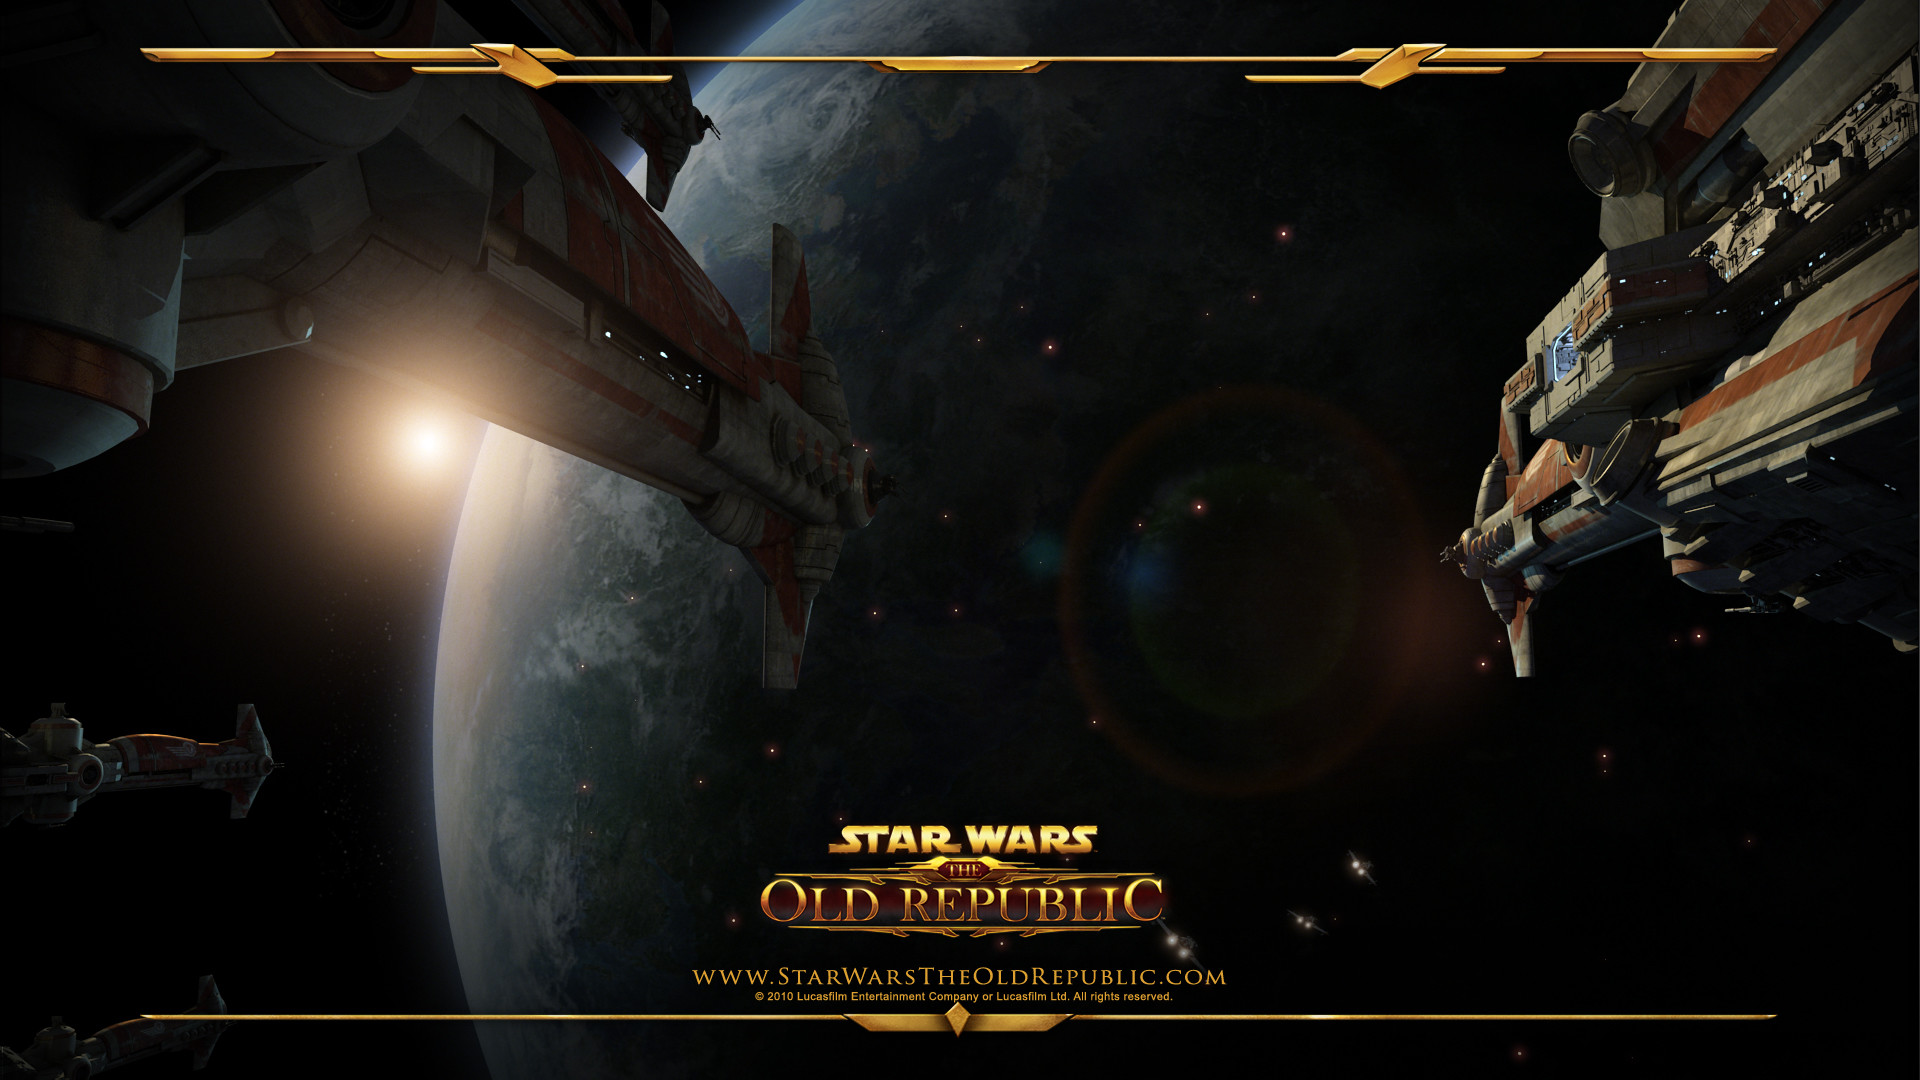 Swtor Wallpapers 1336 X 768 82+ images